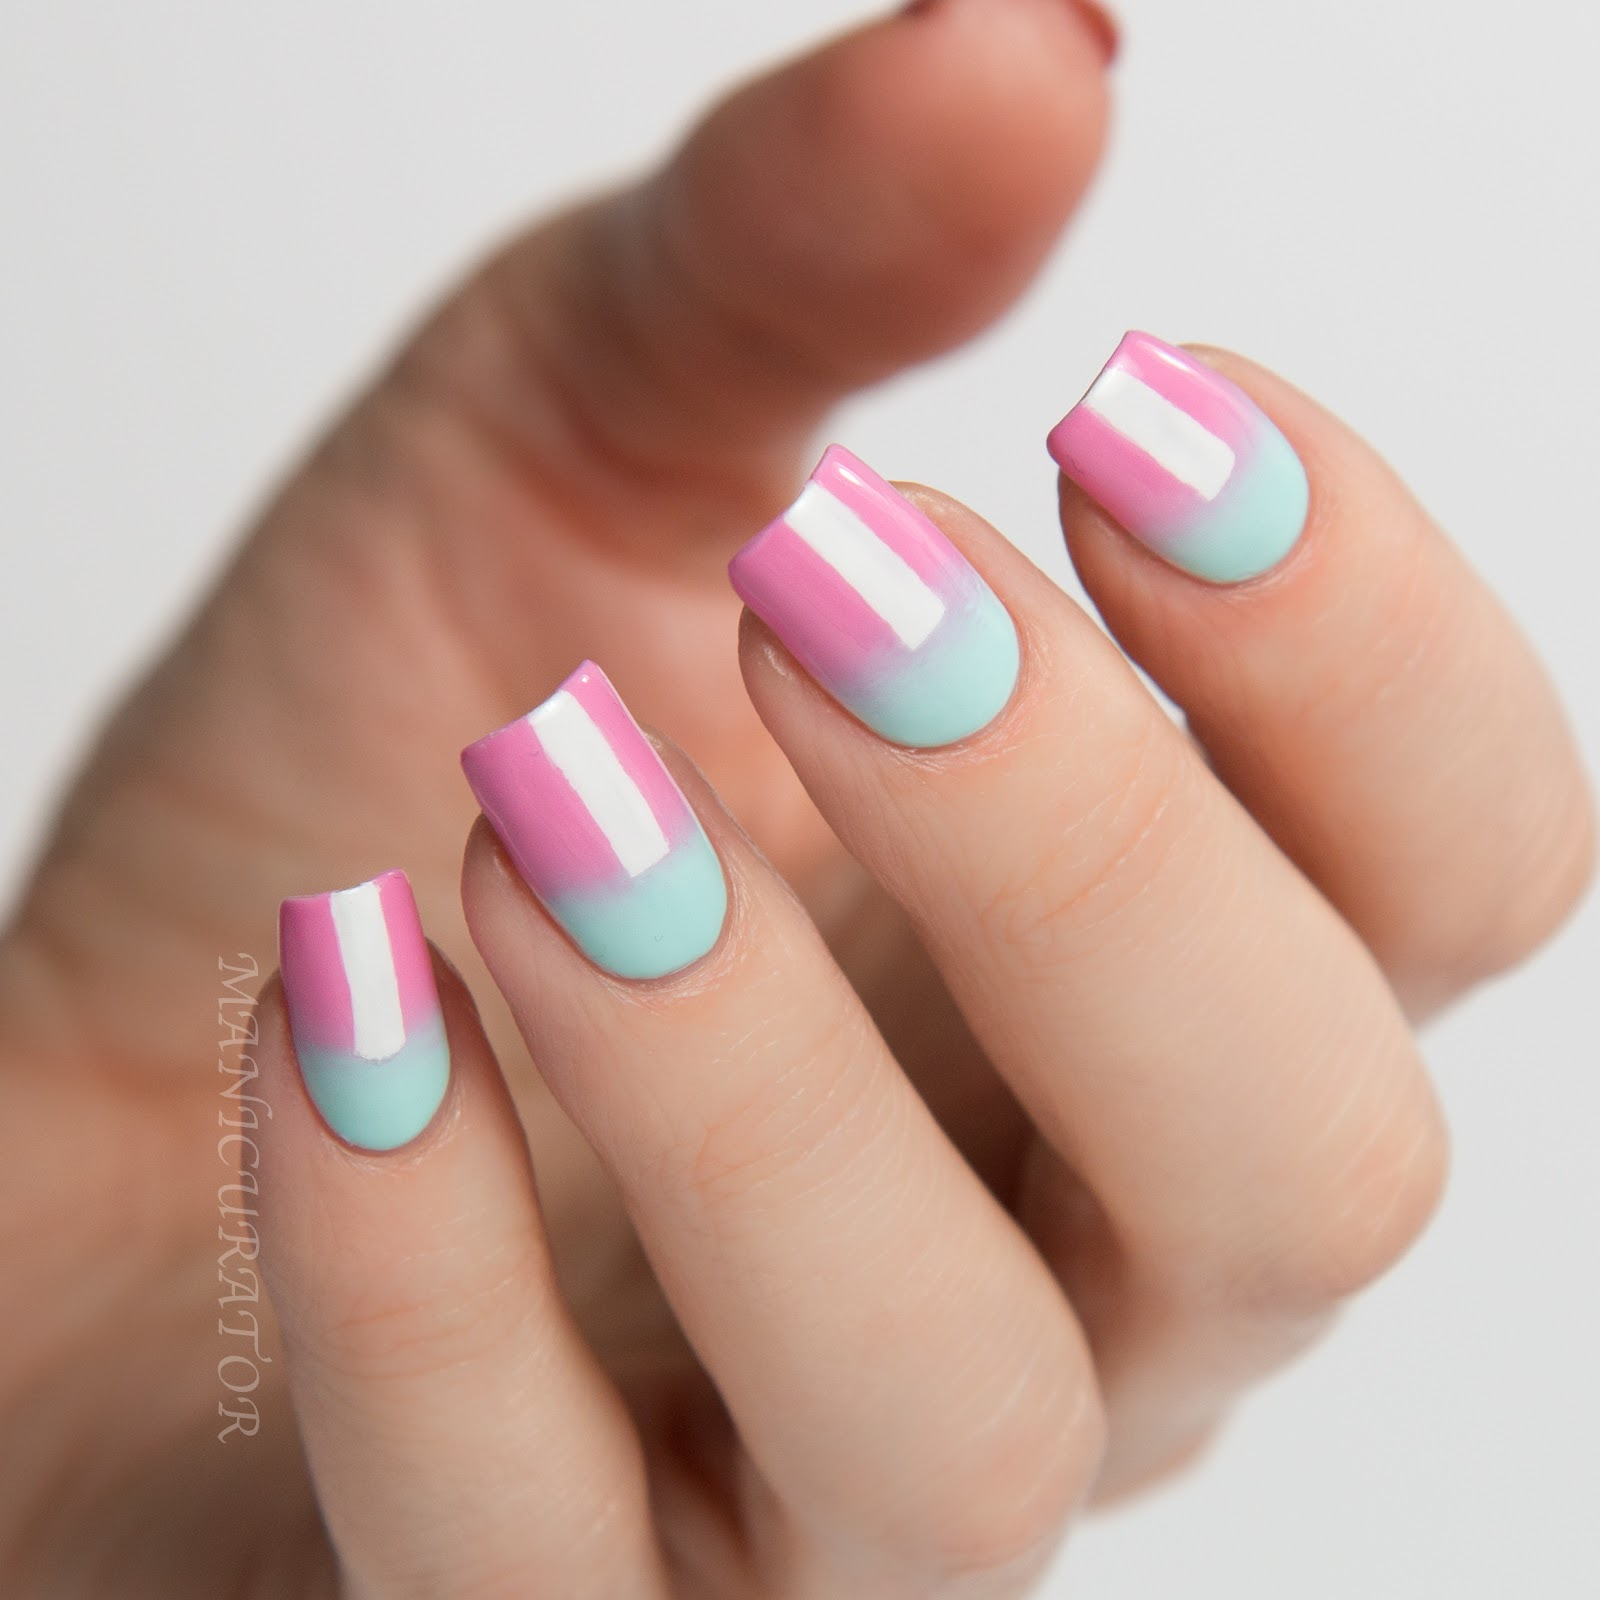 manicurator: Paint All The Nails Presents Pantone Color of the Year ...